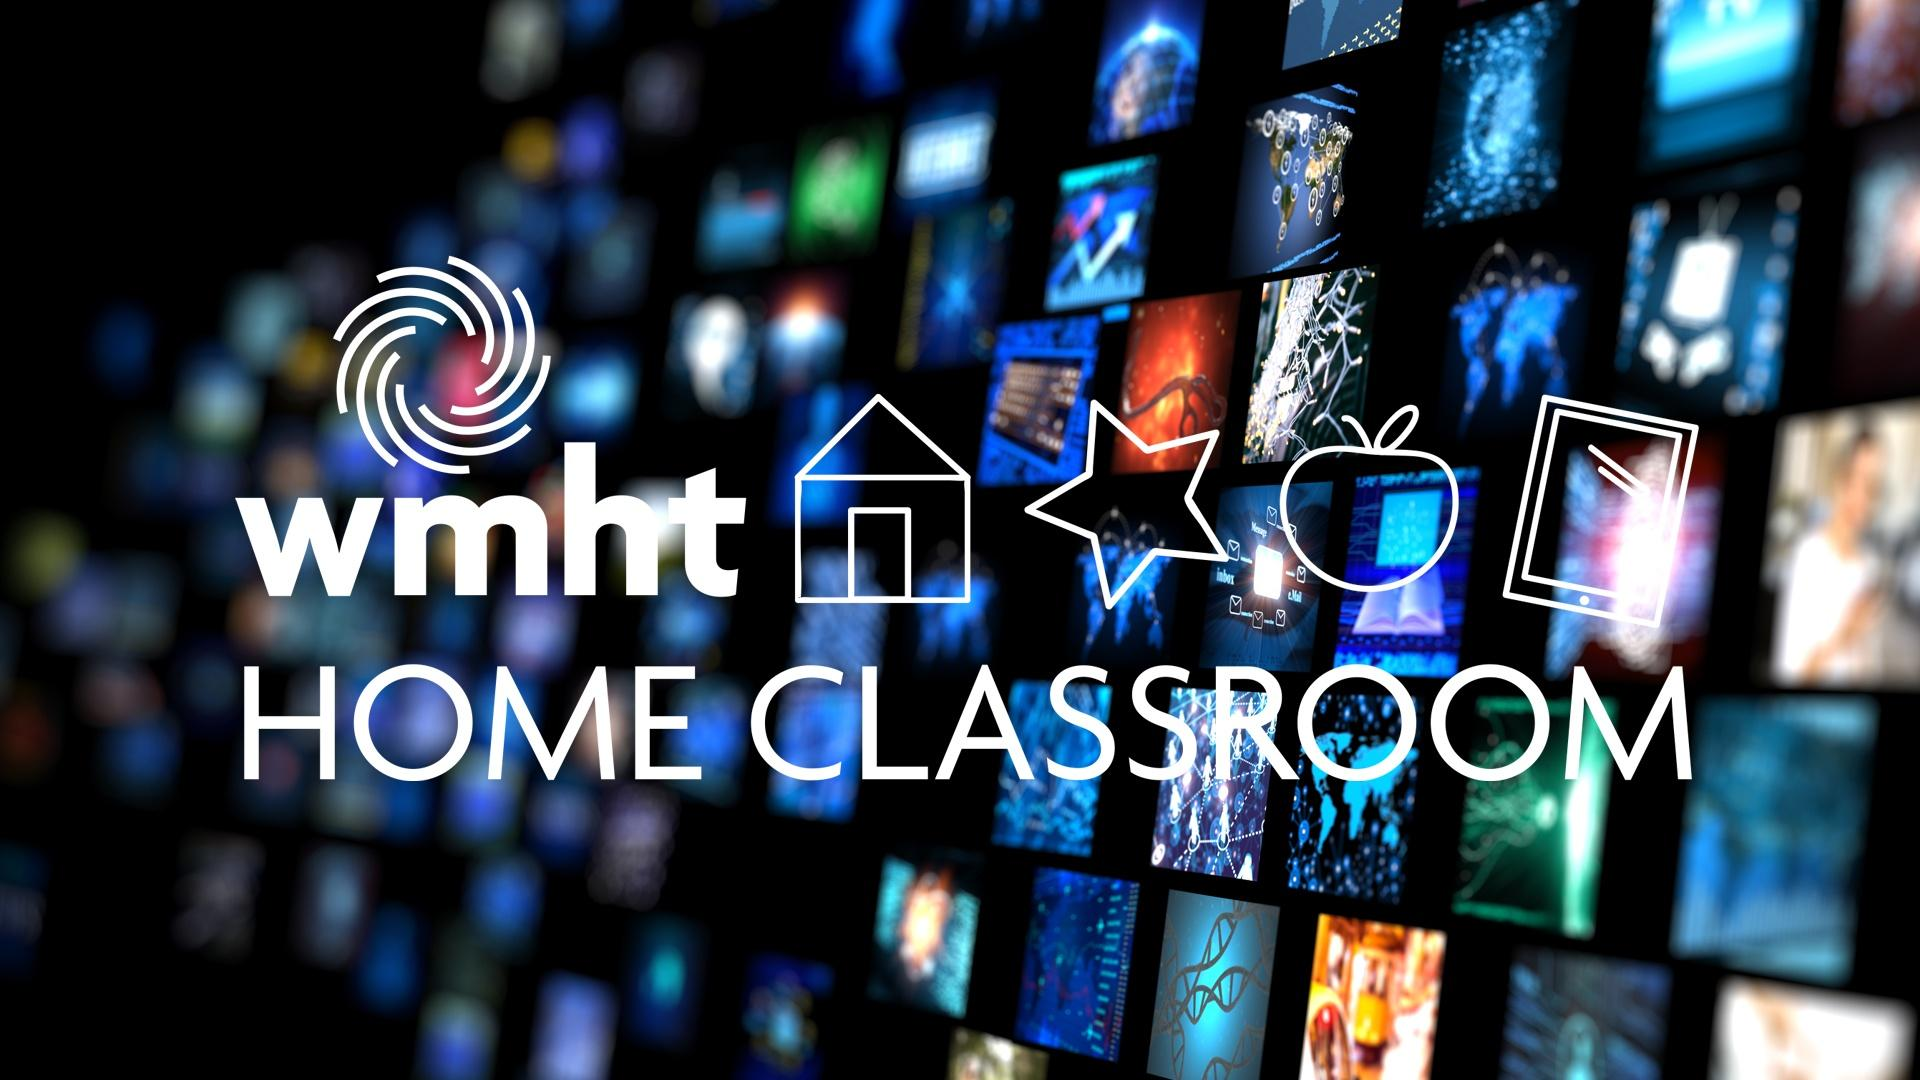 Wall of Screens with WMHT Home Classroom Logo